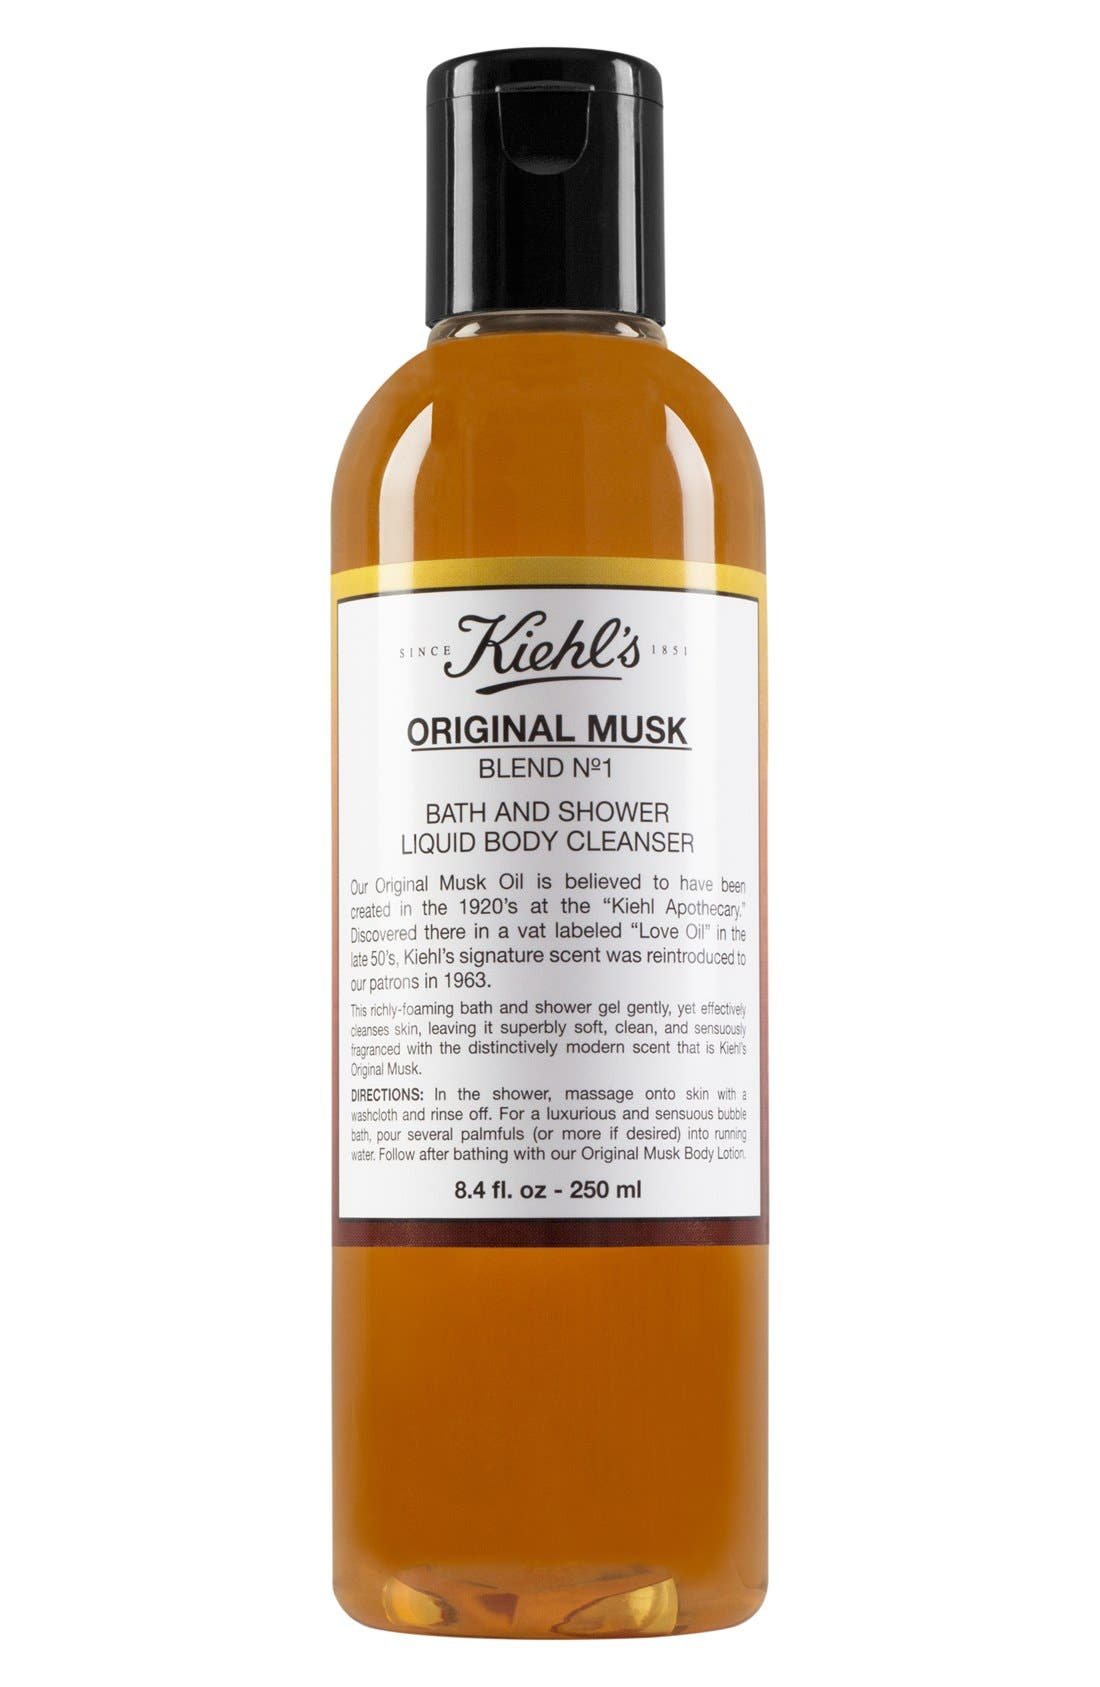 Kiehl's Since 1851 Original Musk Bath & Shower Liquid Body Cleanser